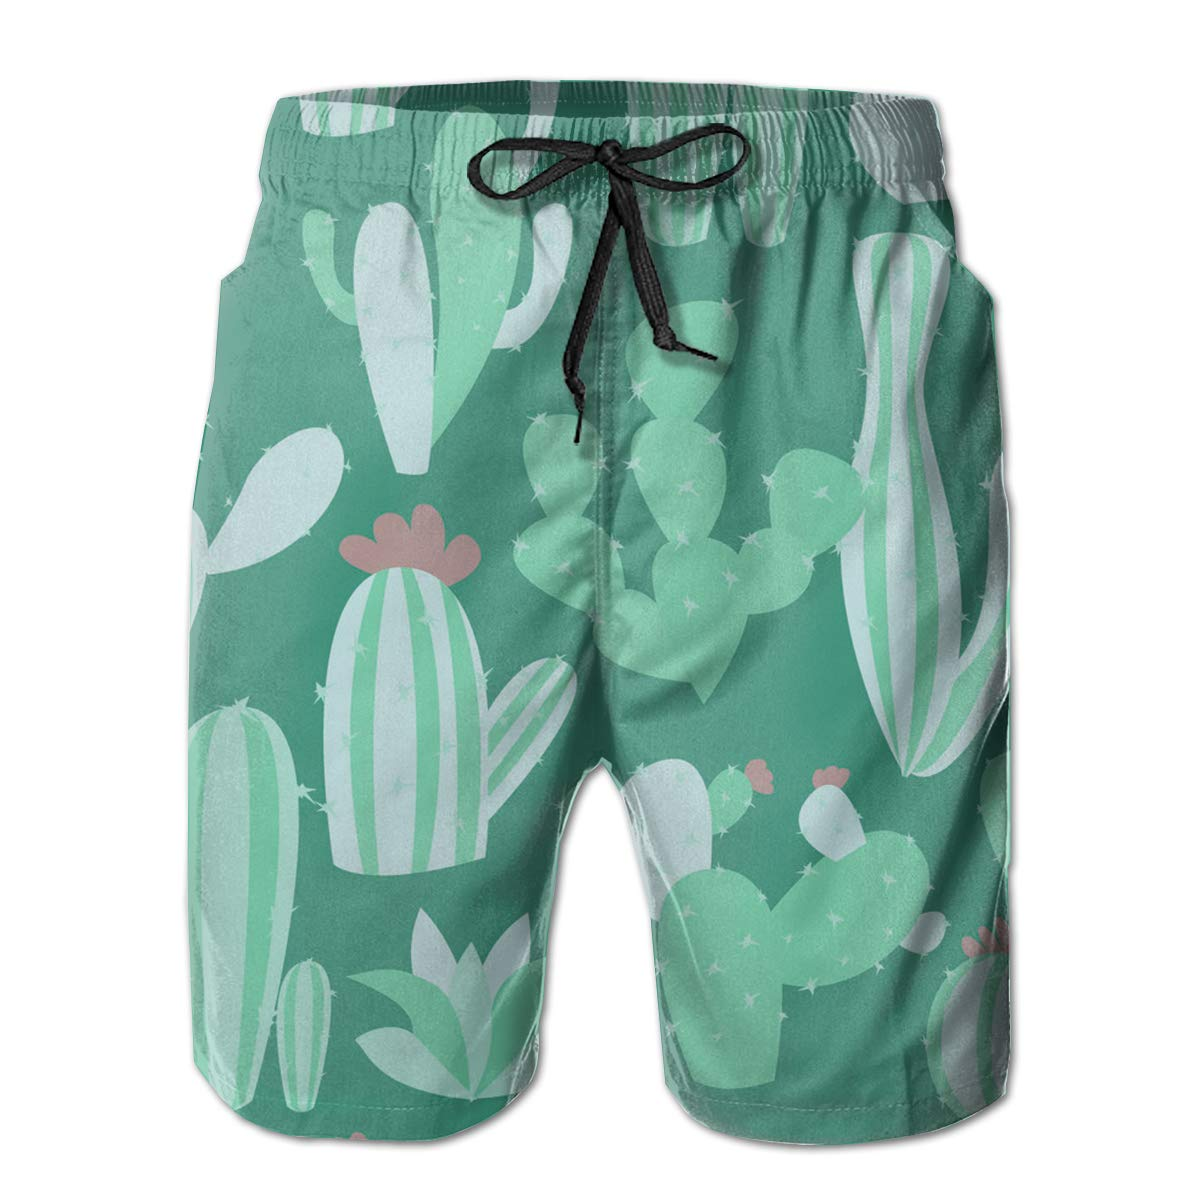 SARA NELL Mens Swim Trunks Cacti Pattern with Succulen Green Cactus Surfing Beach Board Shorts Swimwear